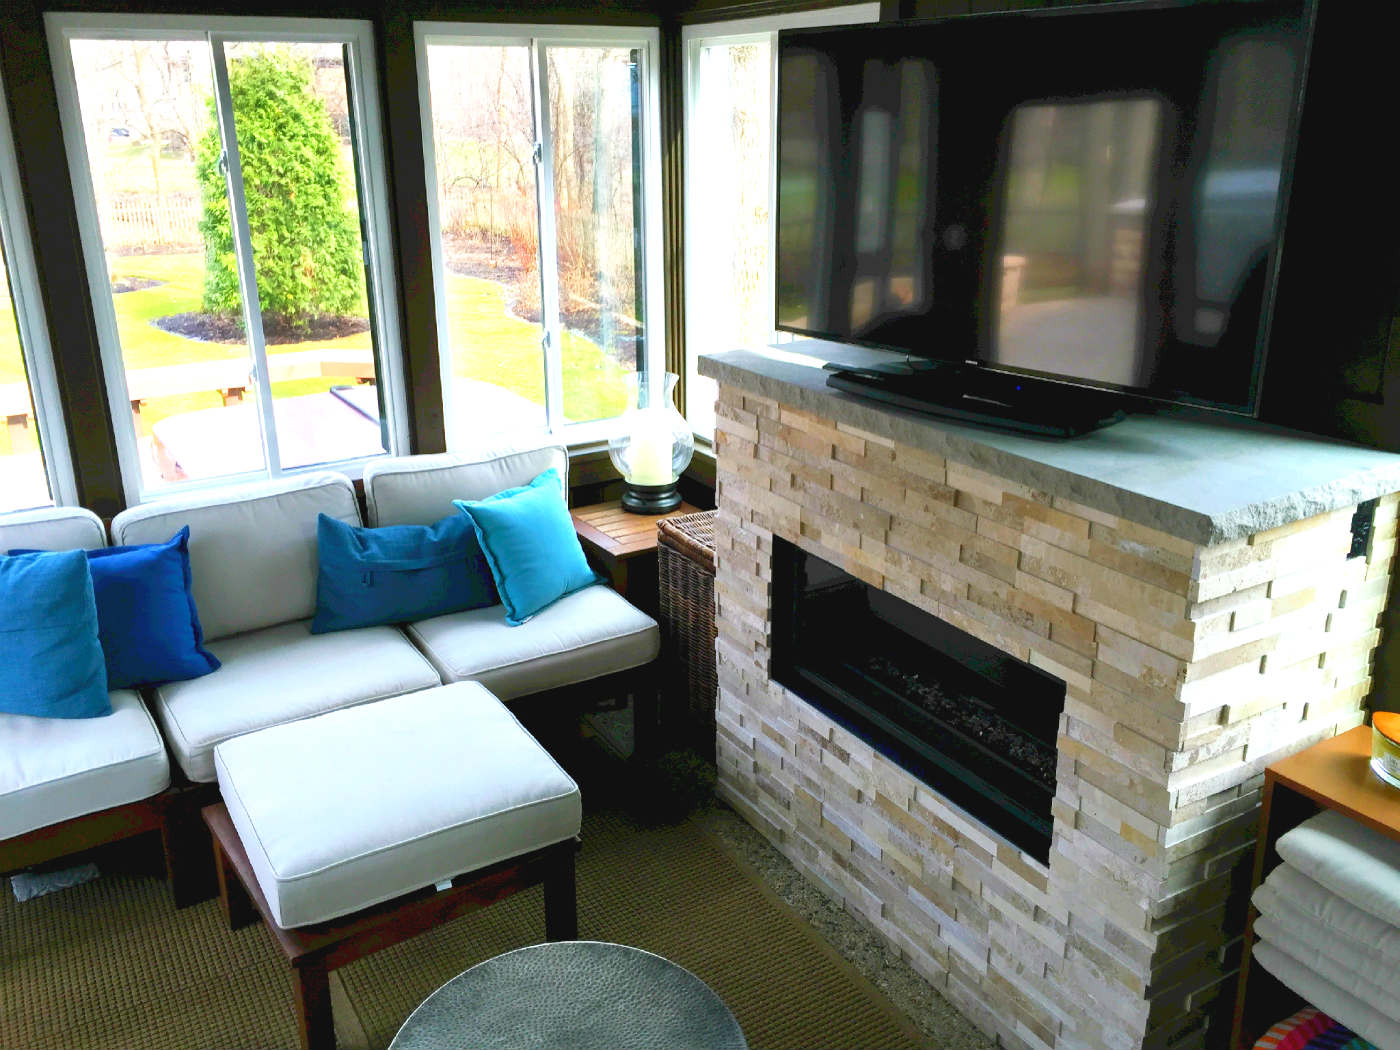 chicagoland sunrooms 3 season rooms 4 season rooms sun porches one of the most common requests we receive when area homeowners call for a sunroom is to have loads of windows and as much natural light as possible